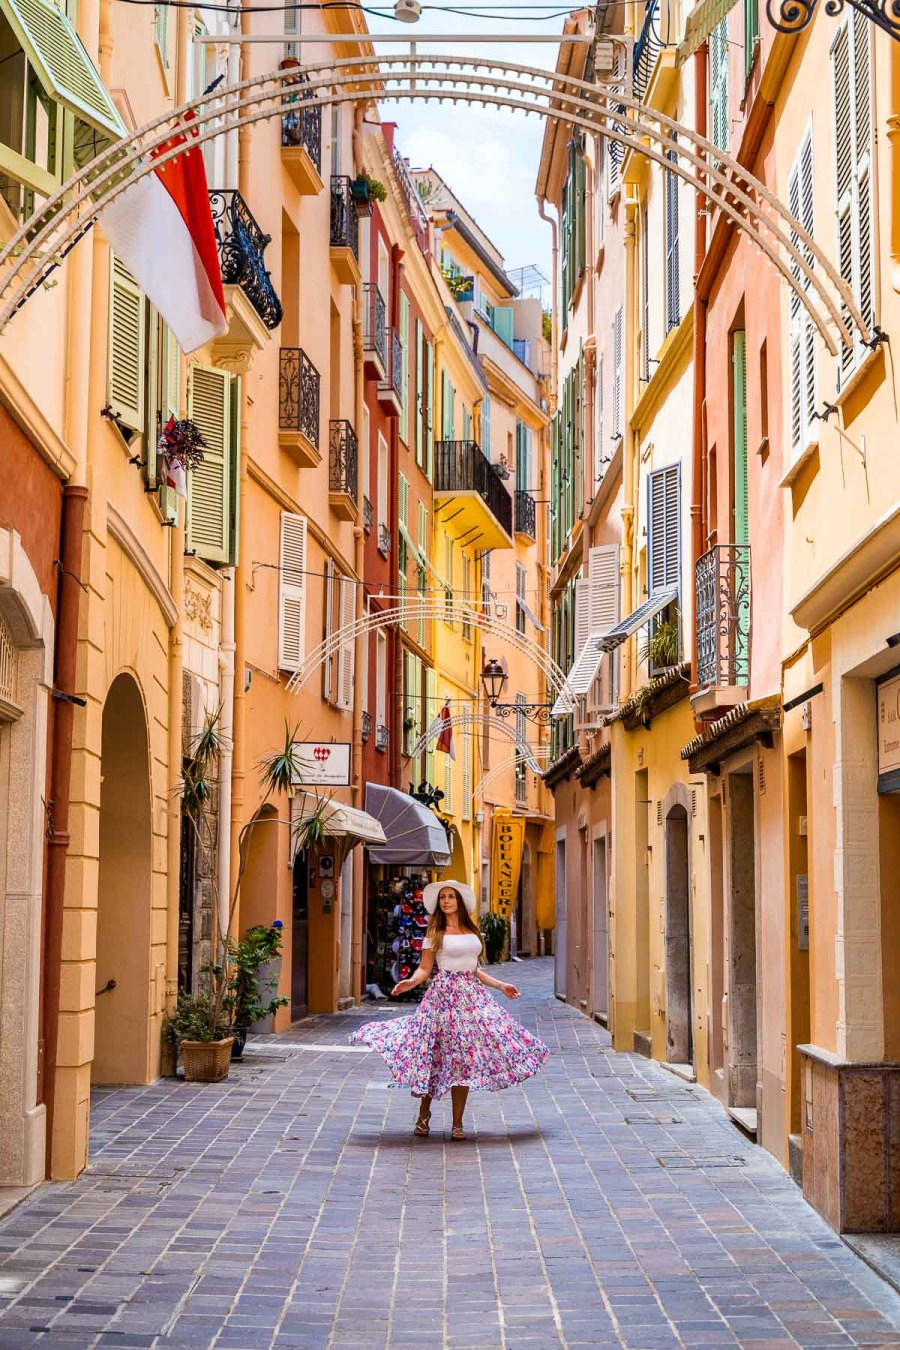 Colorful houses in Monaco Old Town with girl in the middle